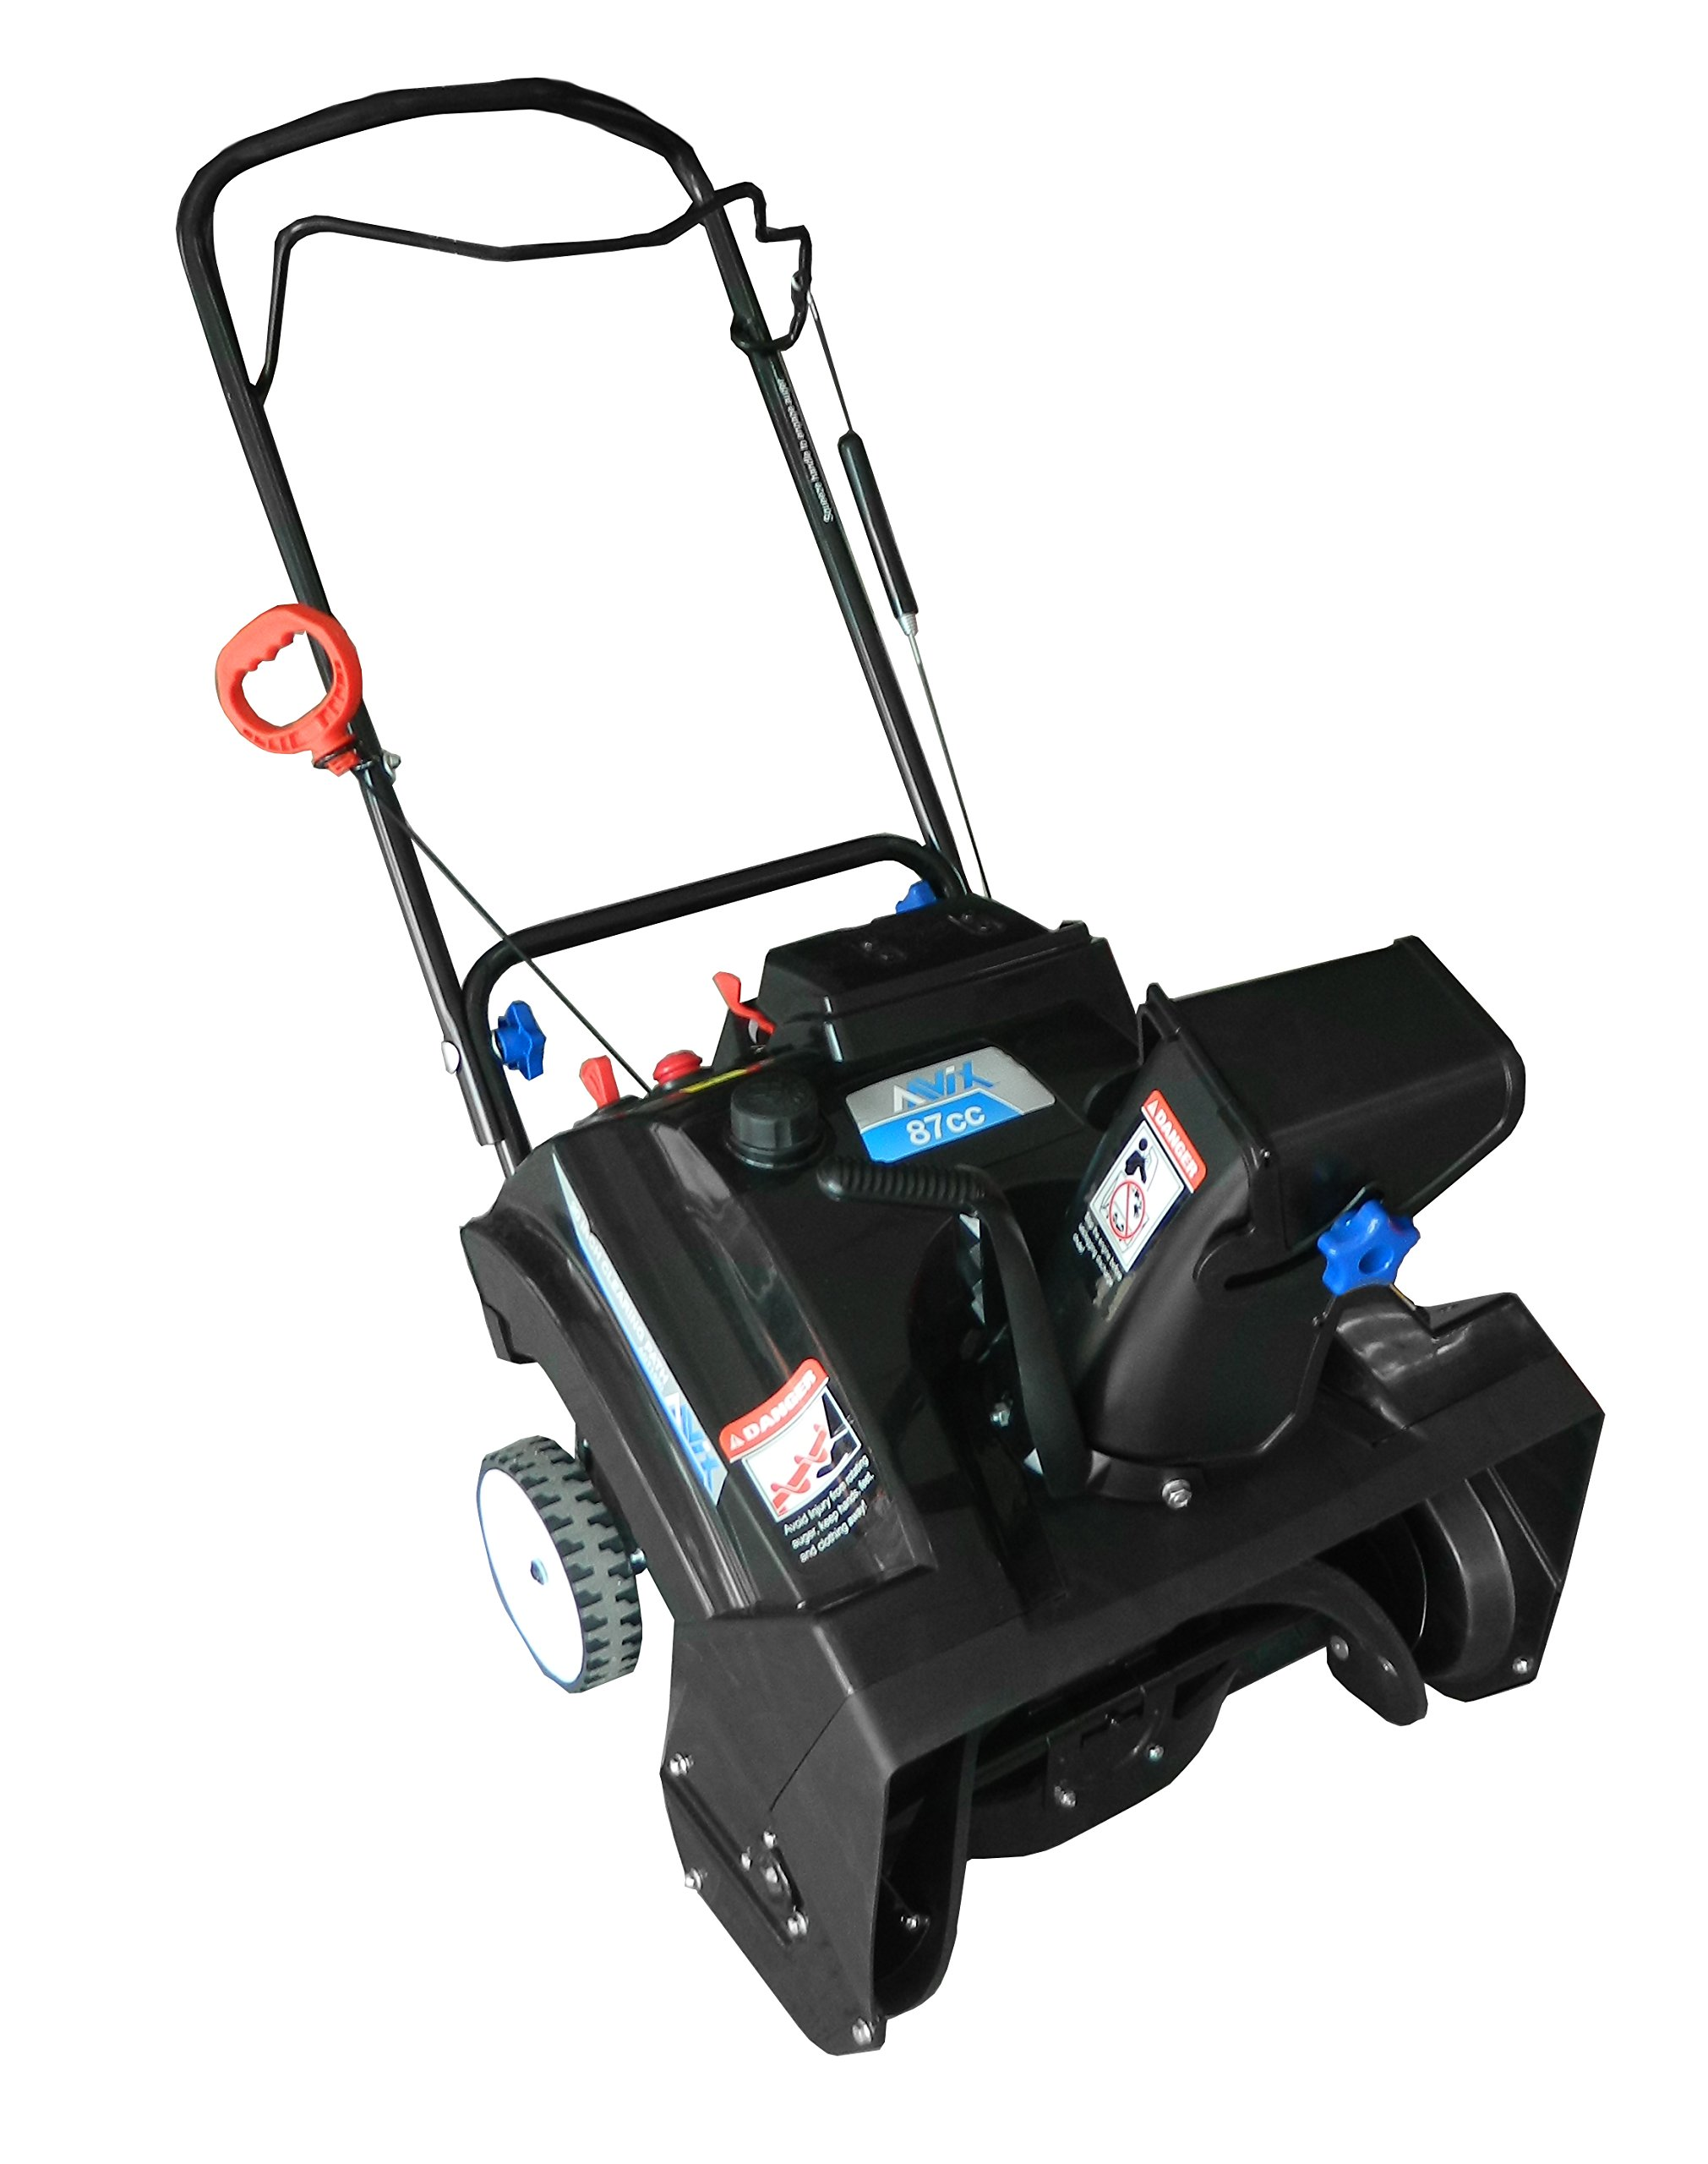 AAVIX AGT1420 Gas 87CC Powered Single Stage Snow Thrower, 20-Inch, Black/Blue by AAVIX